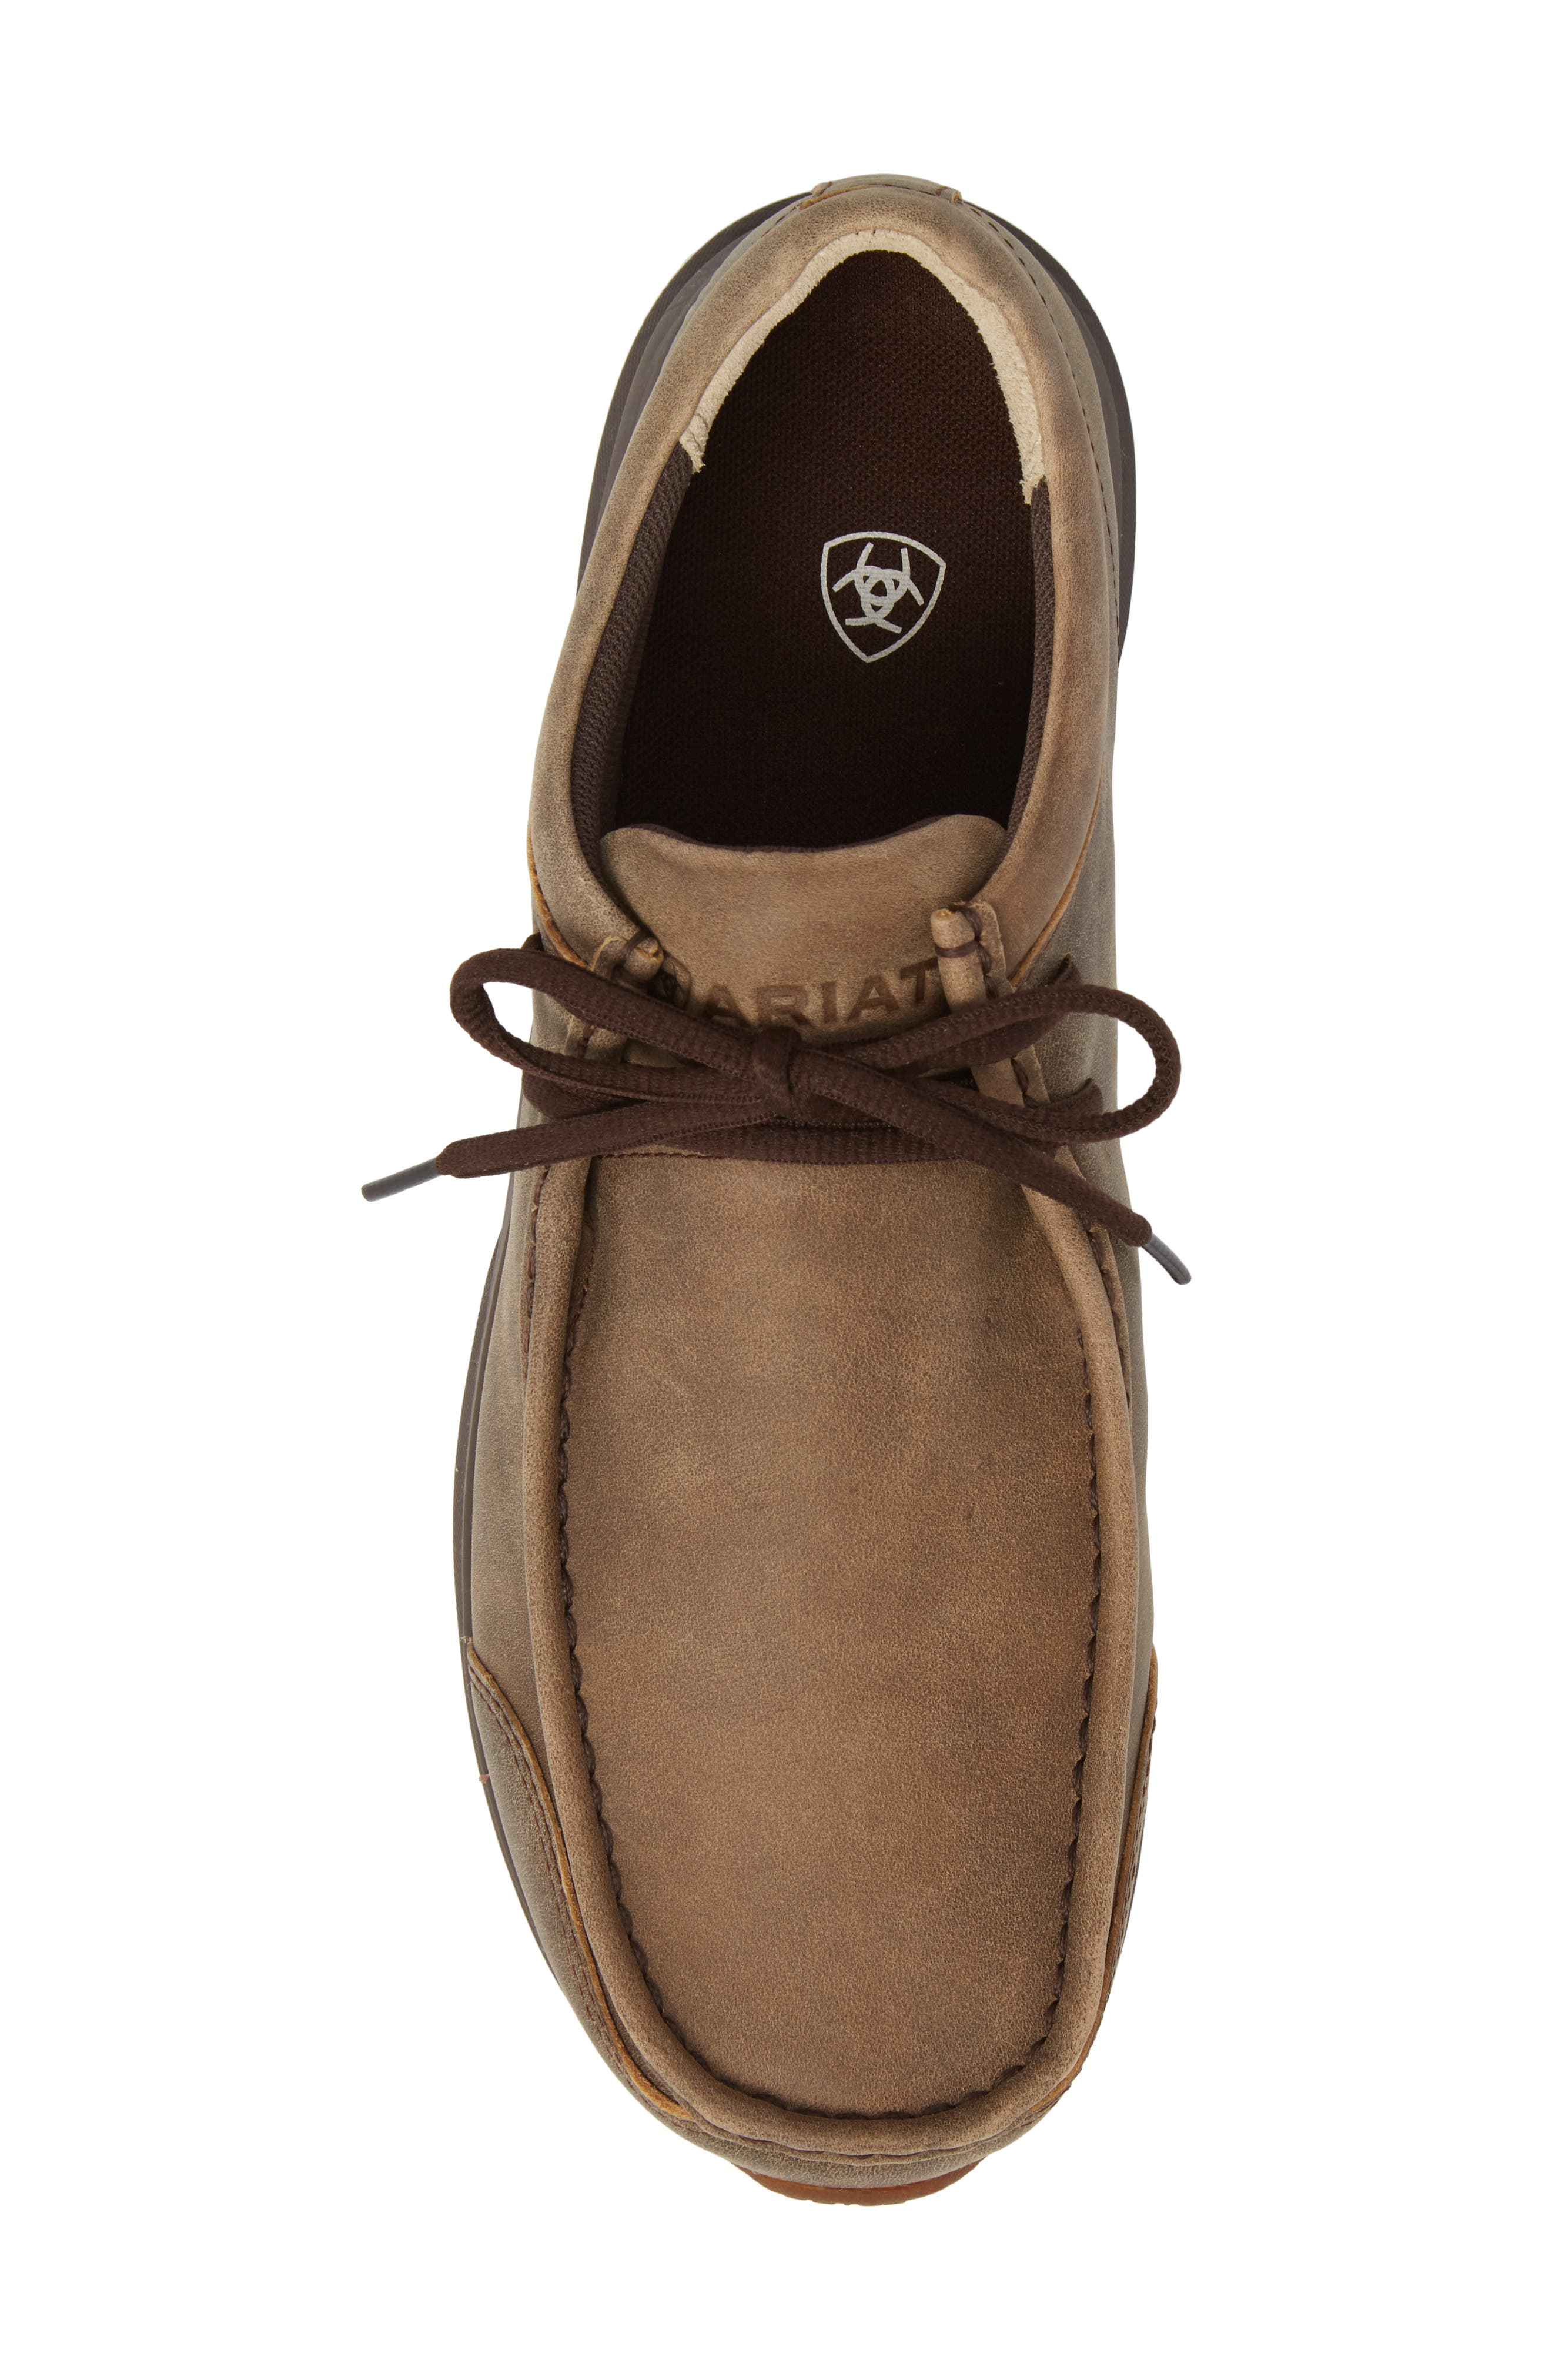 Spitfire Moc Toe Lace-Up,                             Alternate thumbnail 5, color,                             BROWN LEATHER